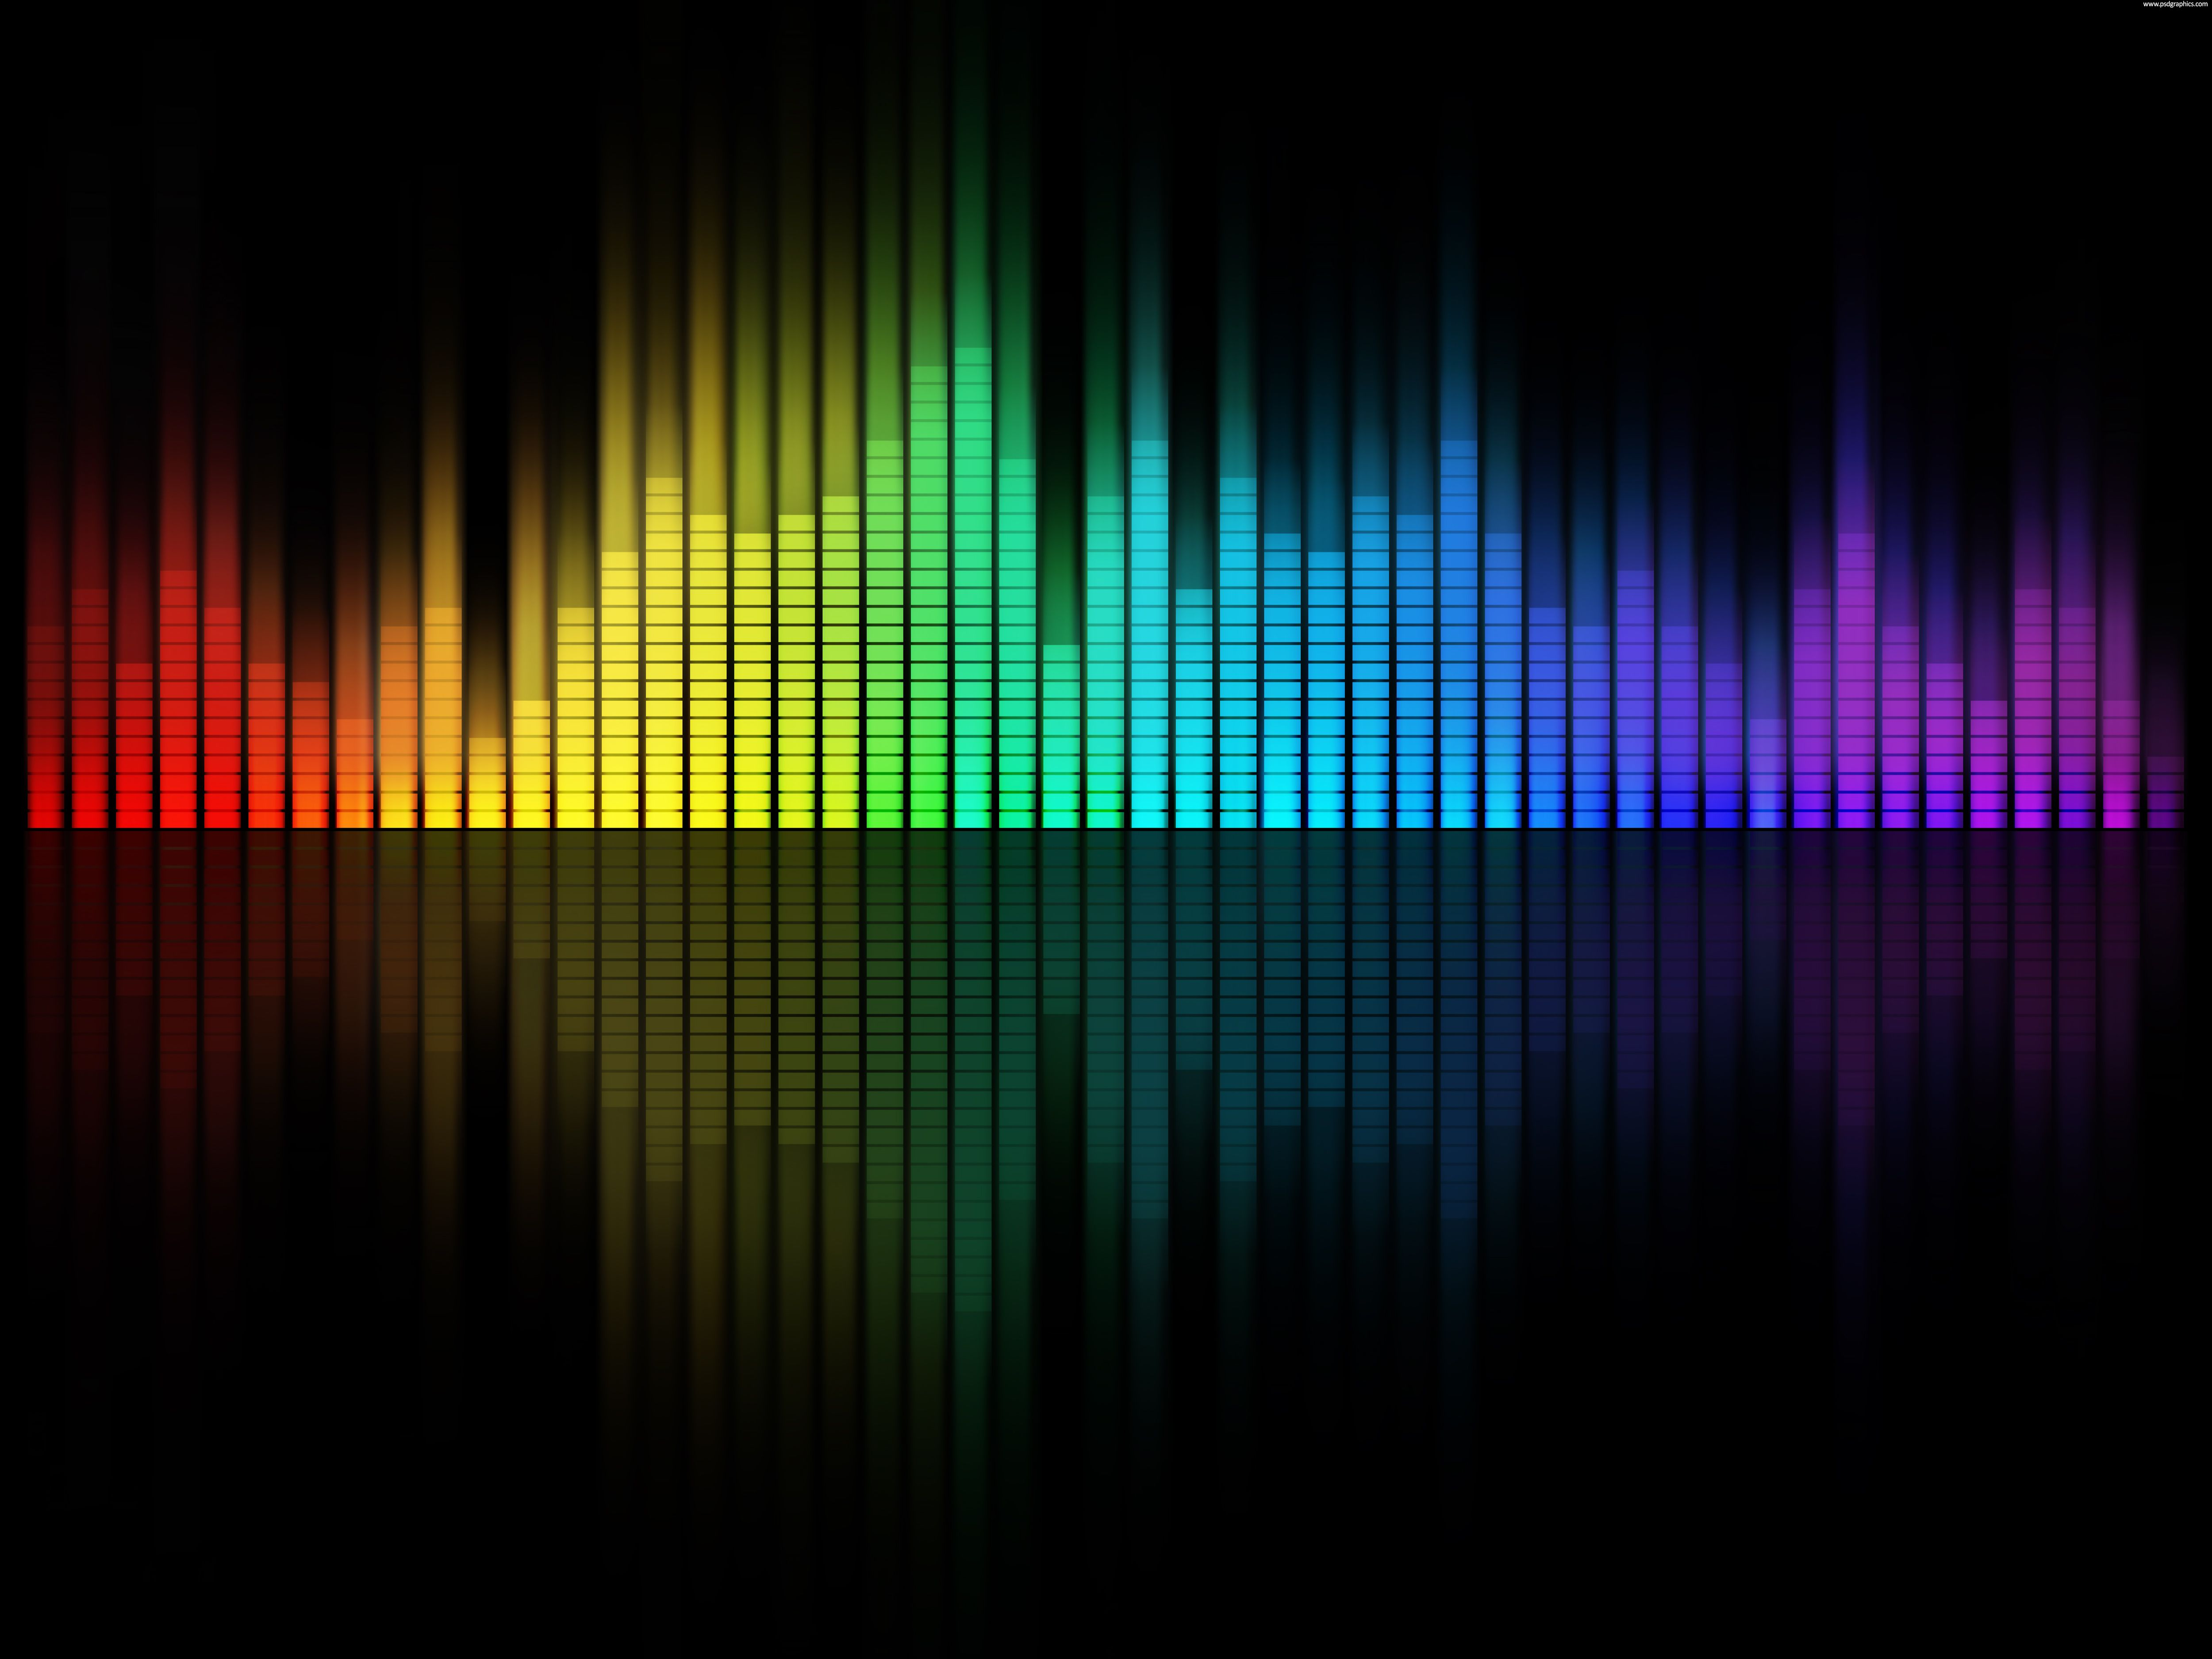 music Music equalizer background Picsart, Planos de